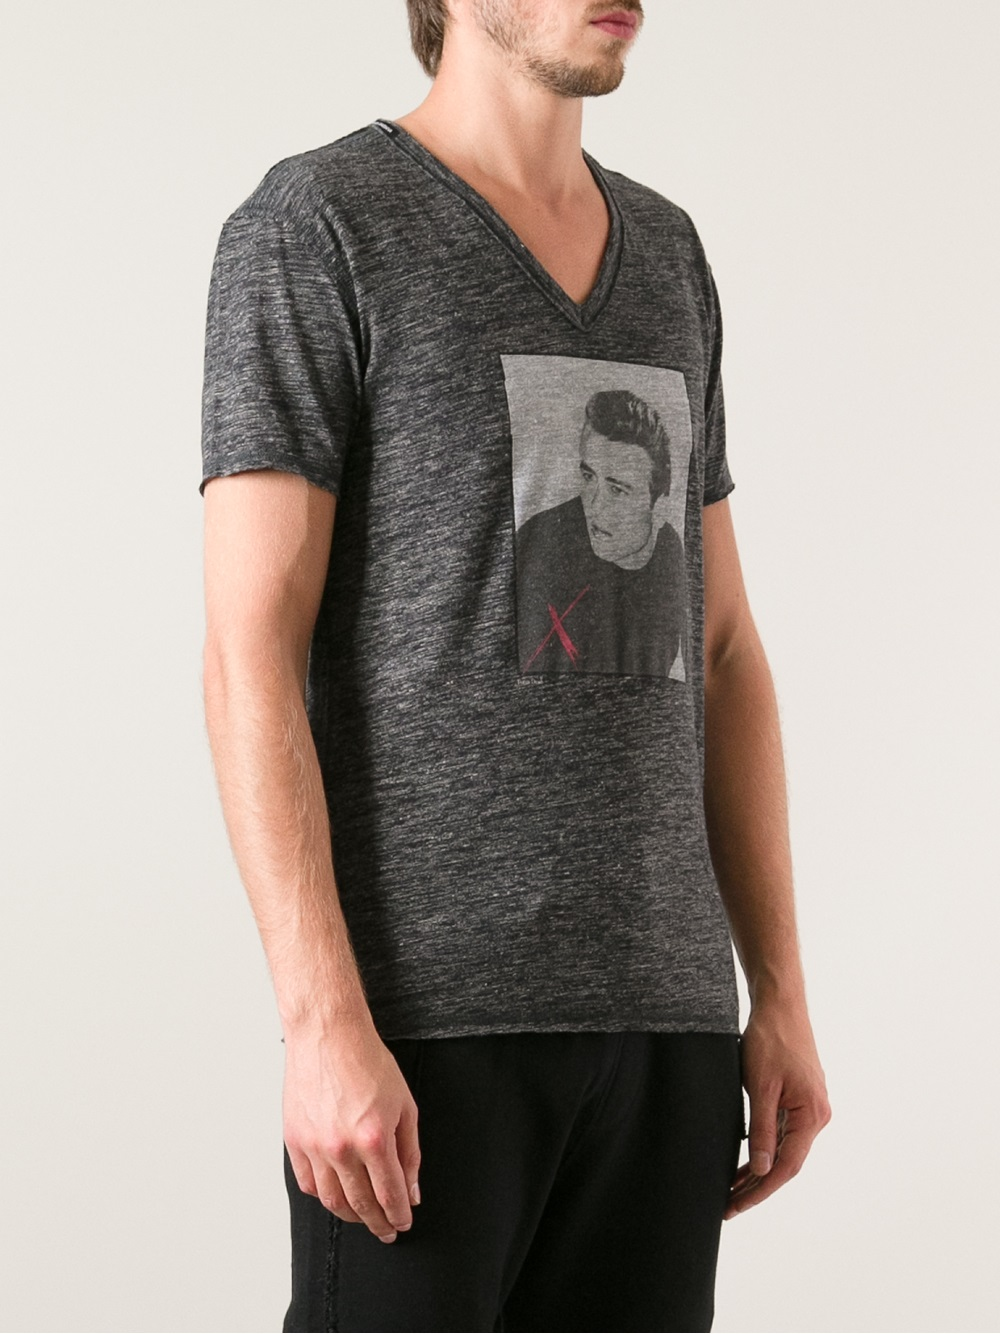 3f36a0a971ea57 Dolce & Gabbana James Dean Tshirt in Gray for Men - Lyst